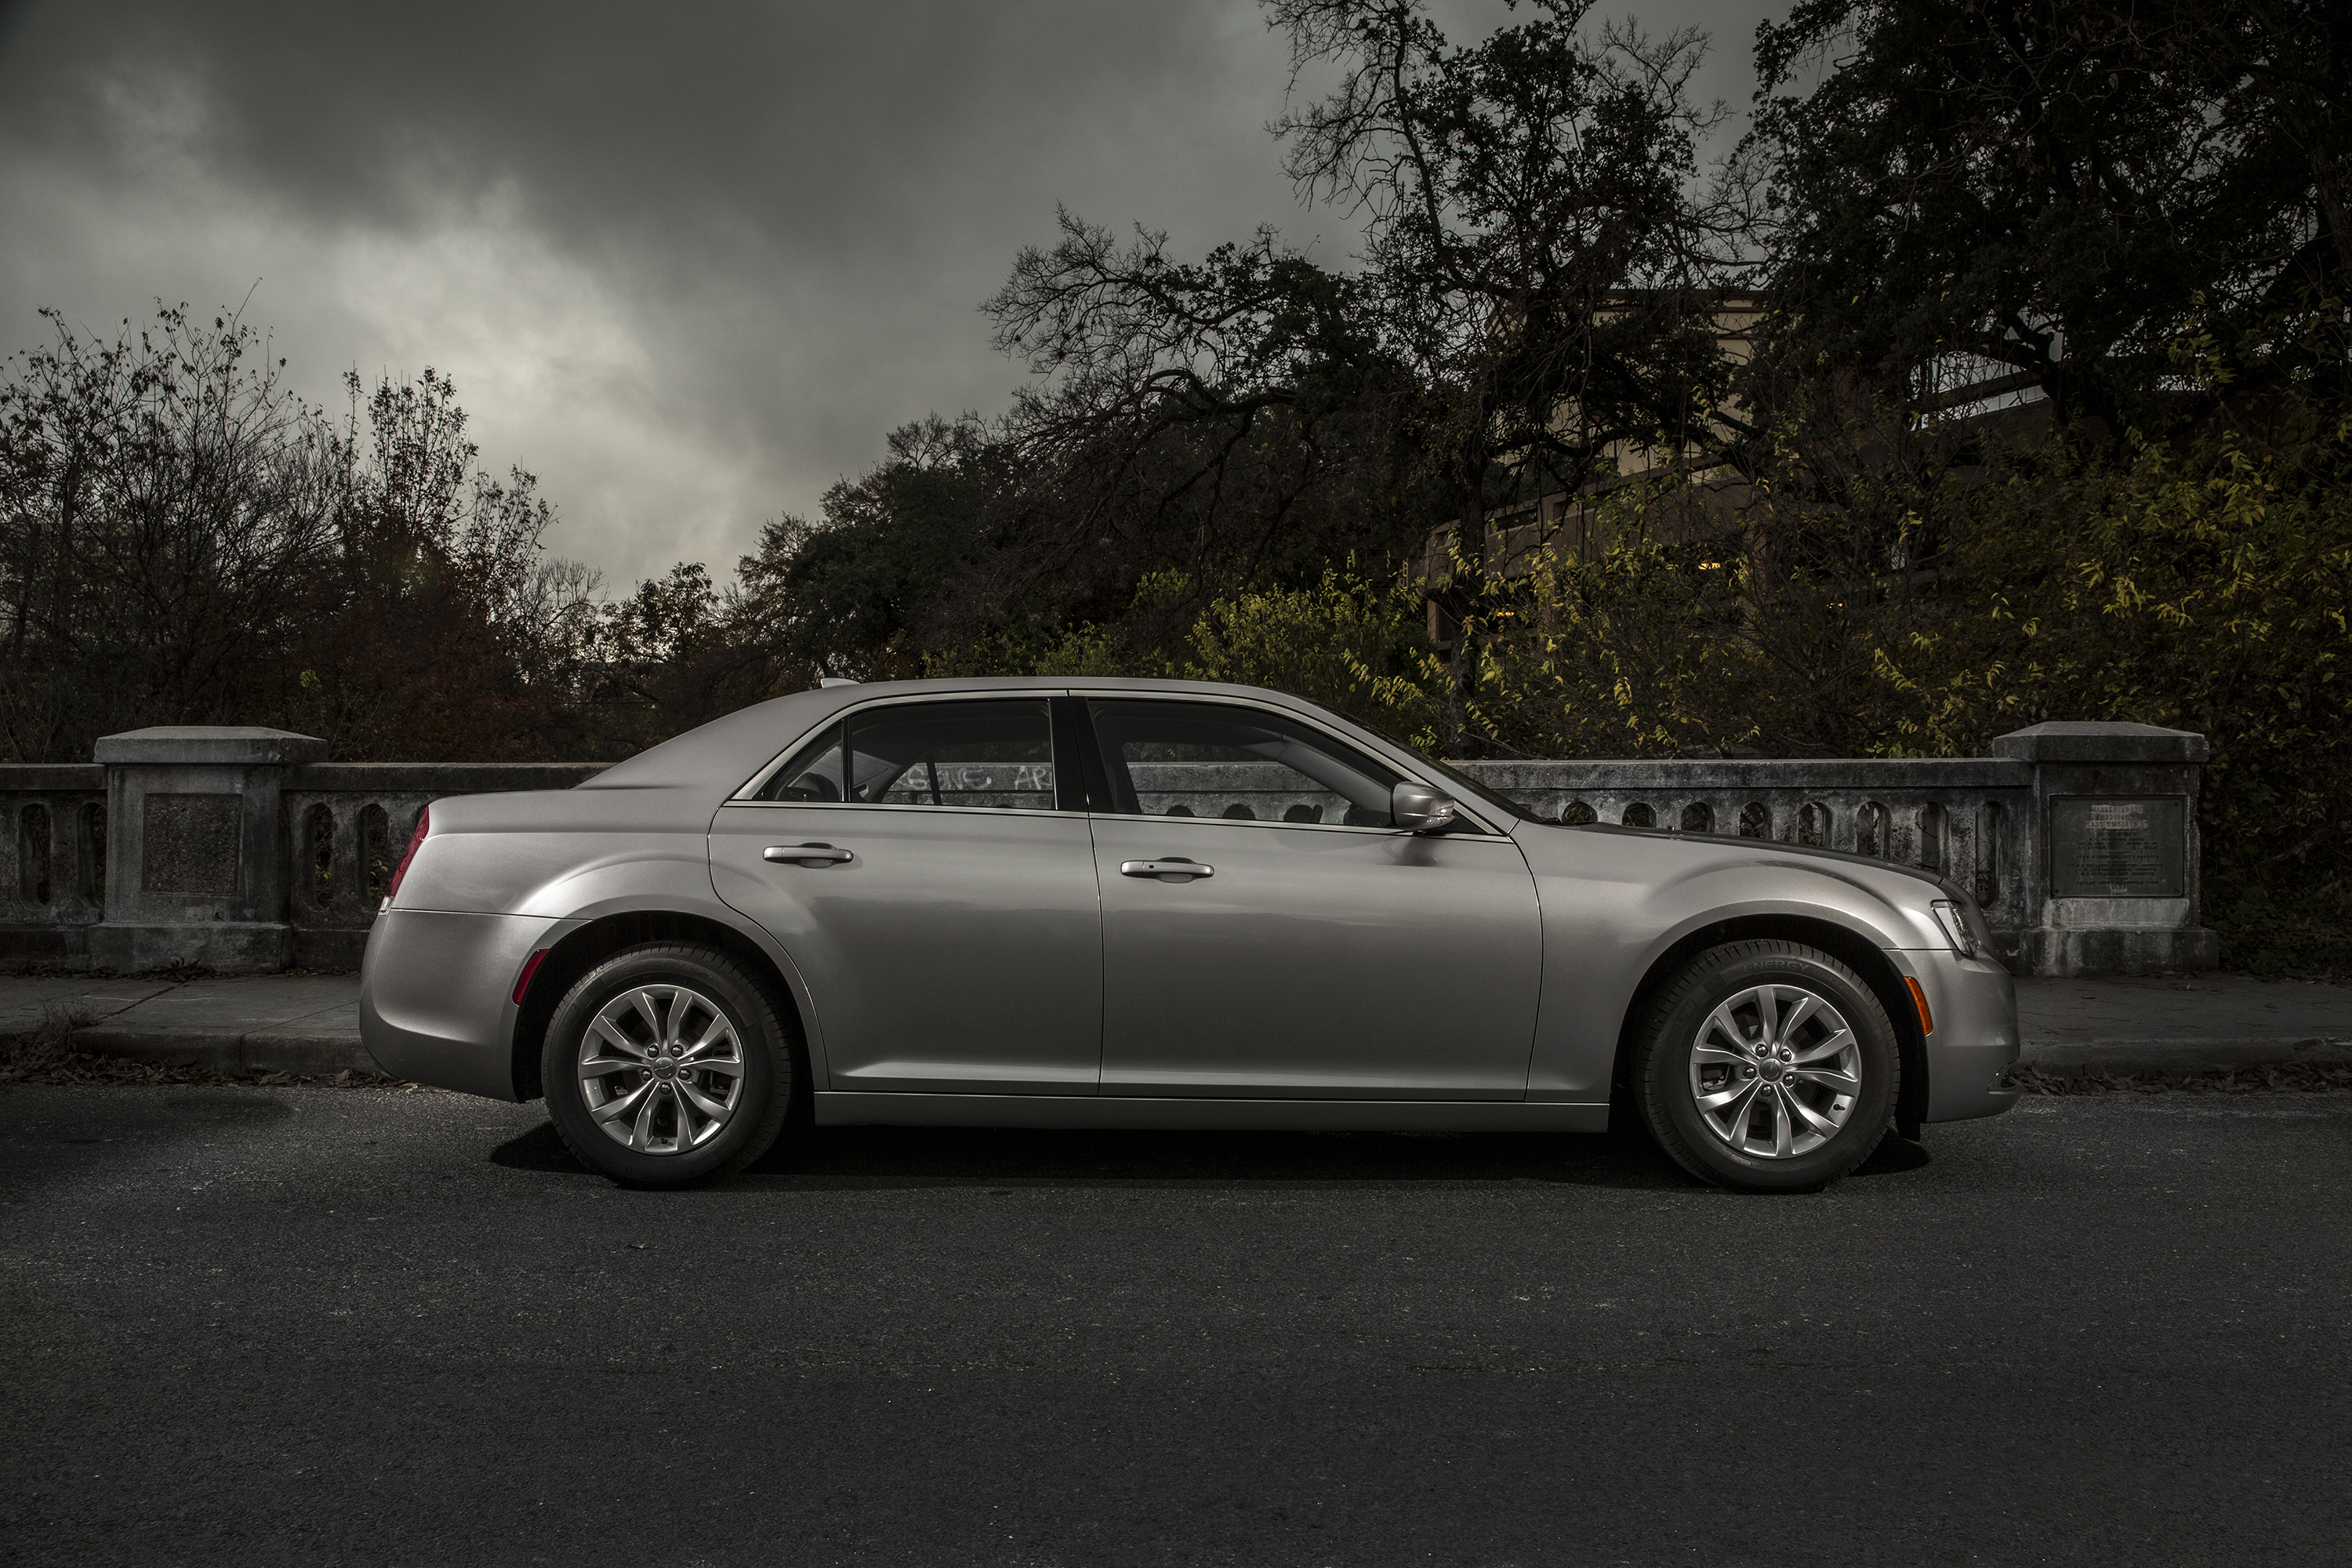 cars chrysler srt top review speed